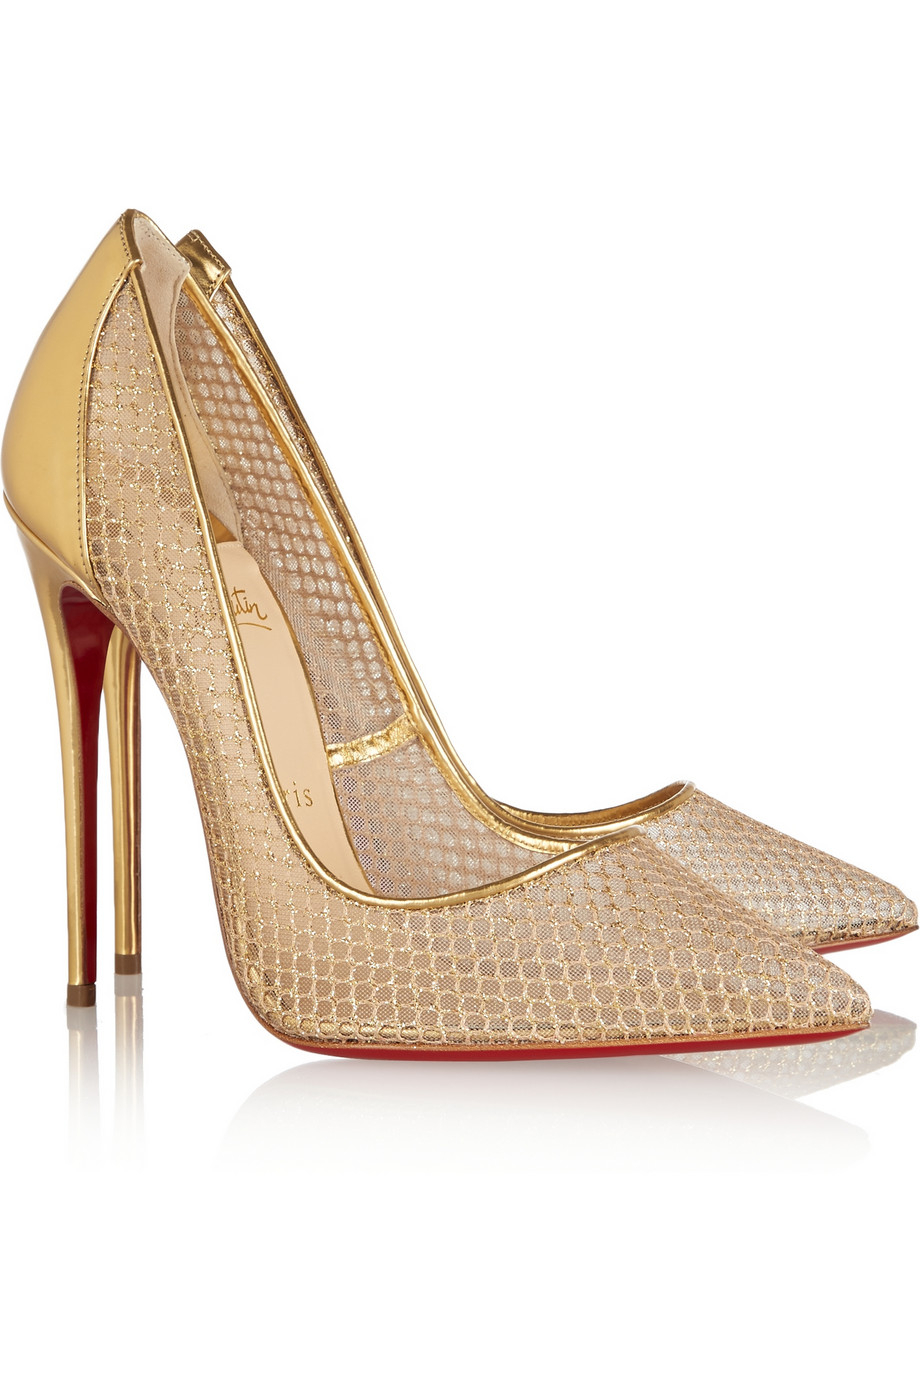 Christian Louboutin Glitter Shoes Uk